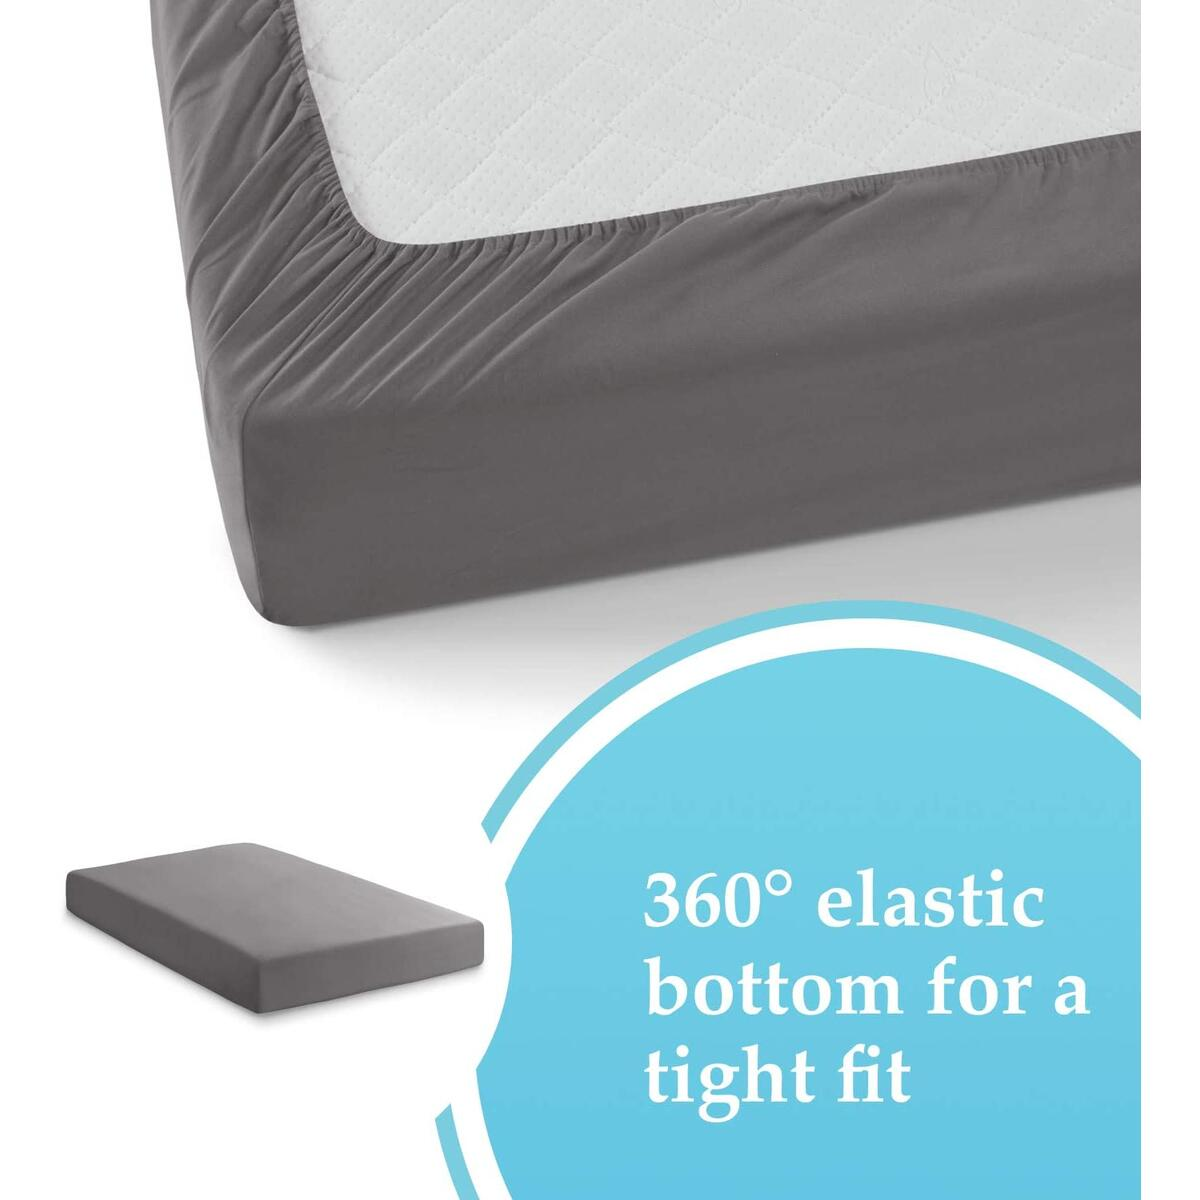 Grey Fitted Sheets Queen Size | Extremely Soft Brushed Microfiber Blend - 360 Elastic Band Bottom Keeps Sheet Secure Even in Heavy Movement | Wrinkle, Shrinking & Color Fade Resistant